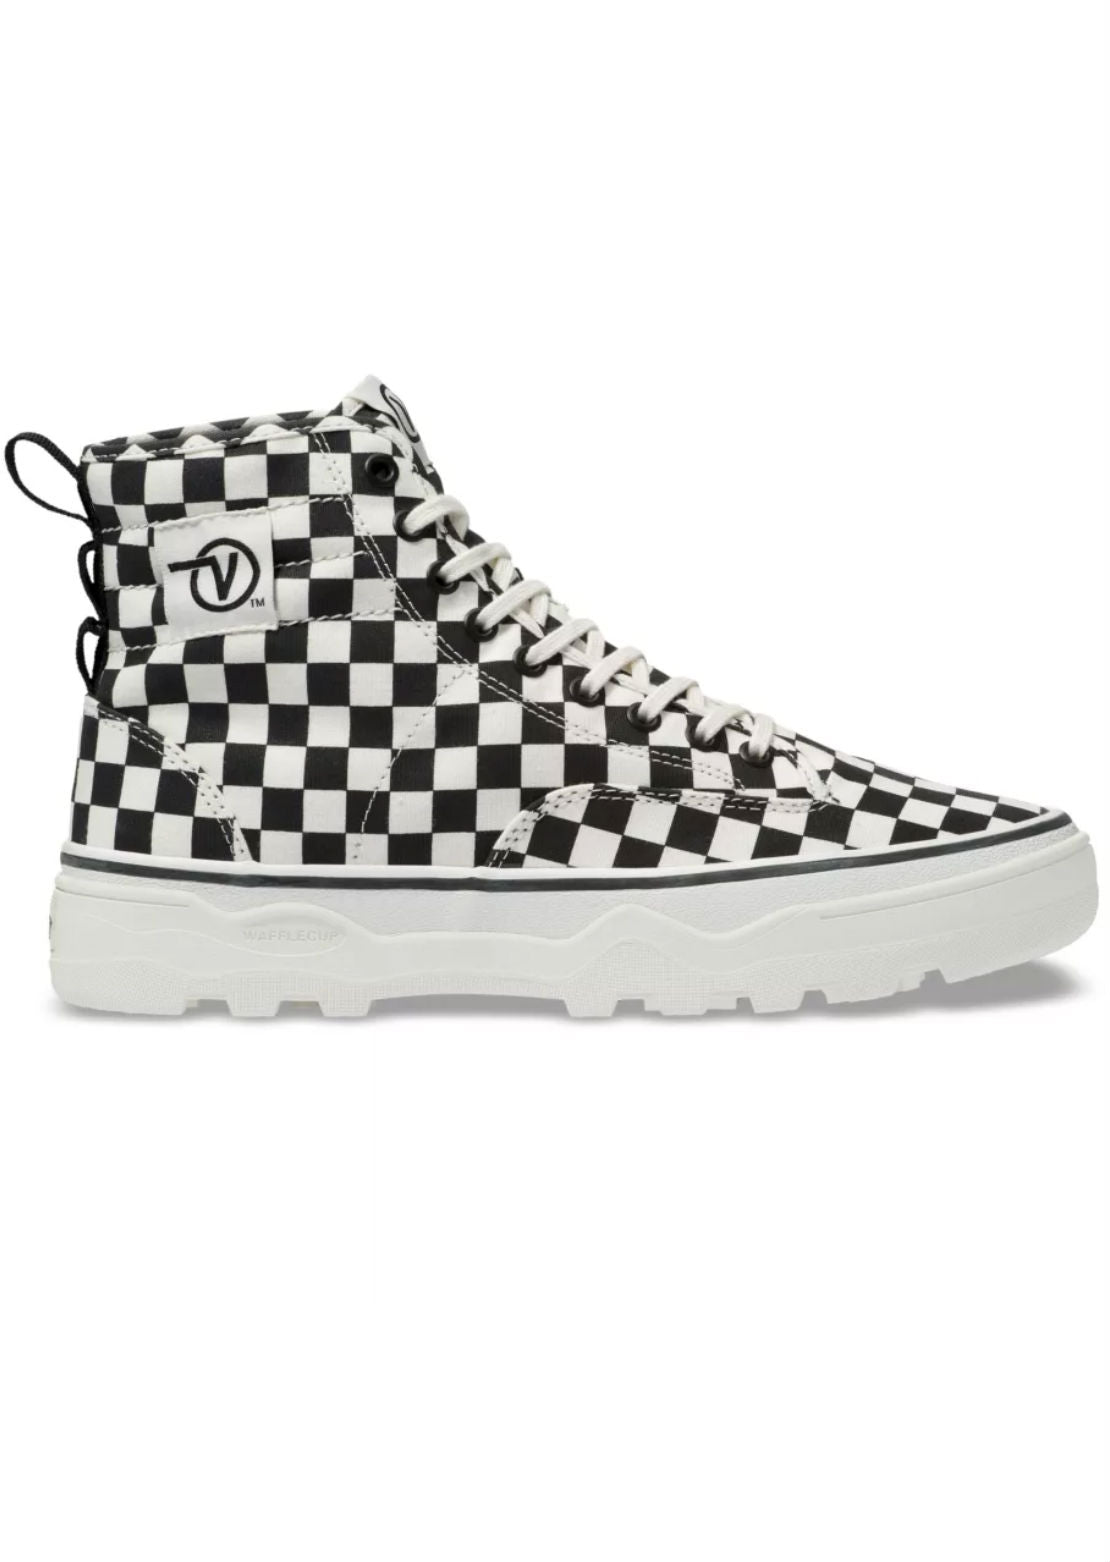 Vans Women's Sentry WC Shoes